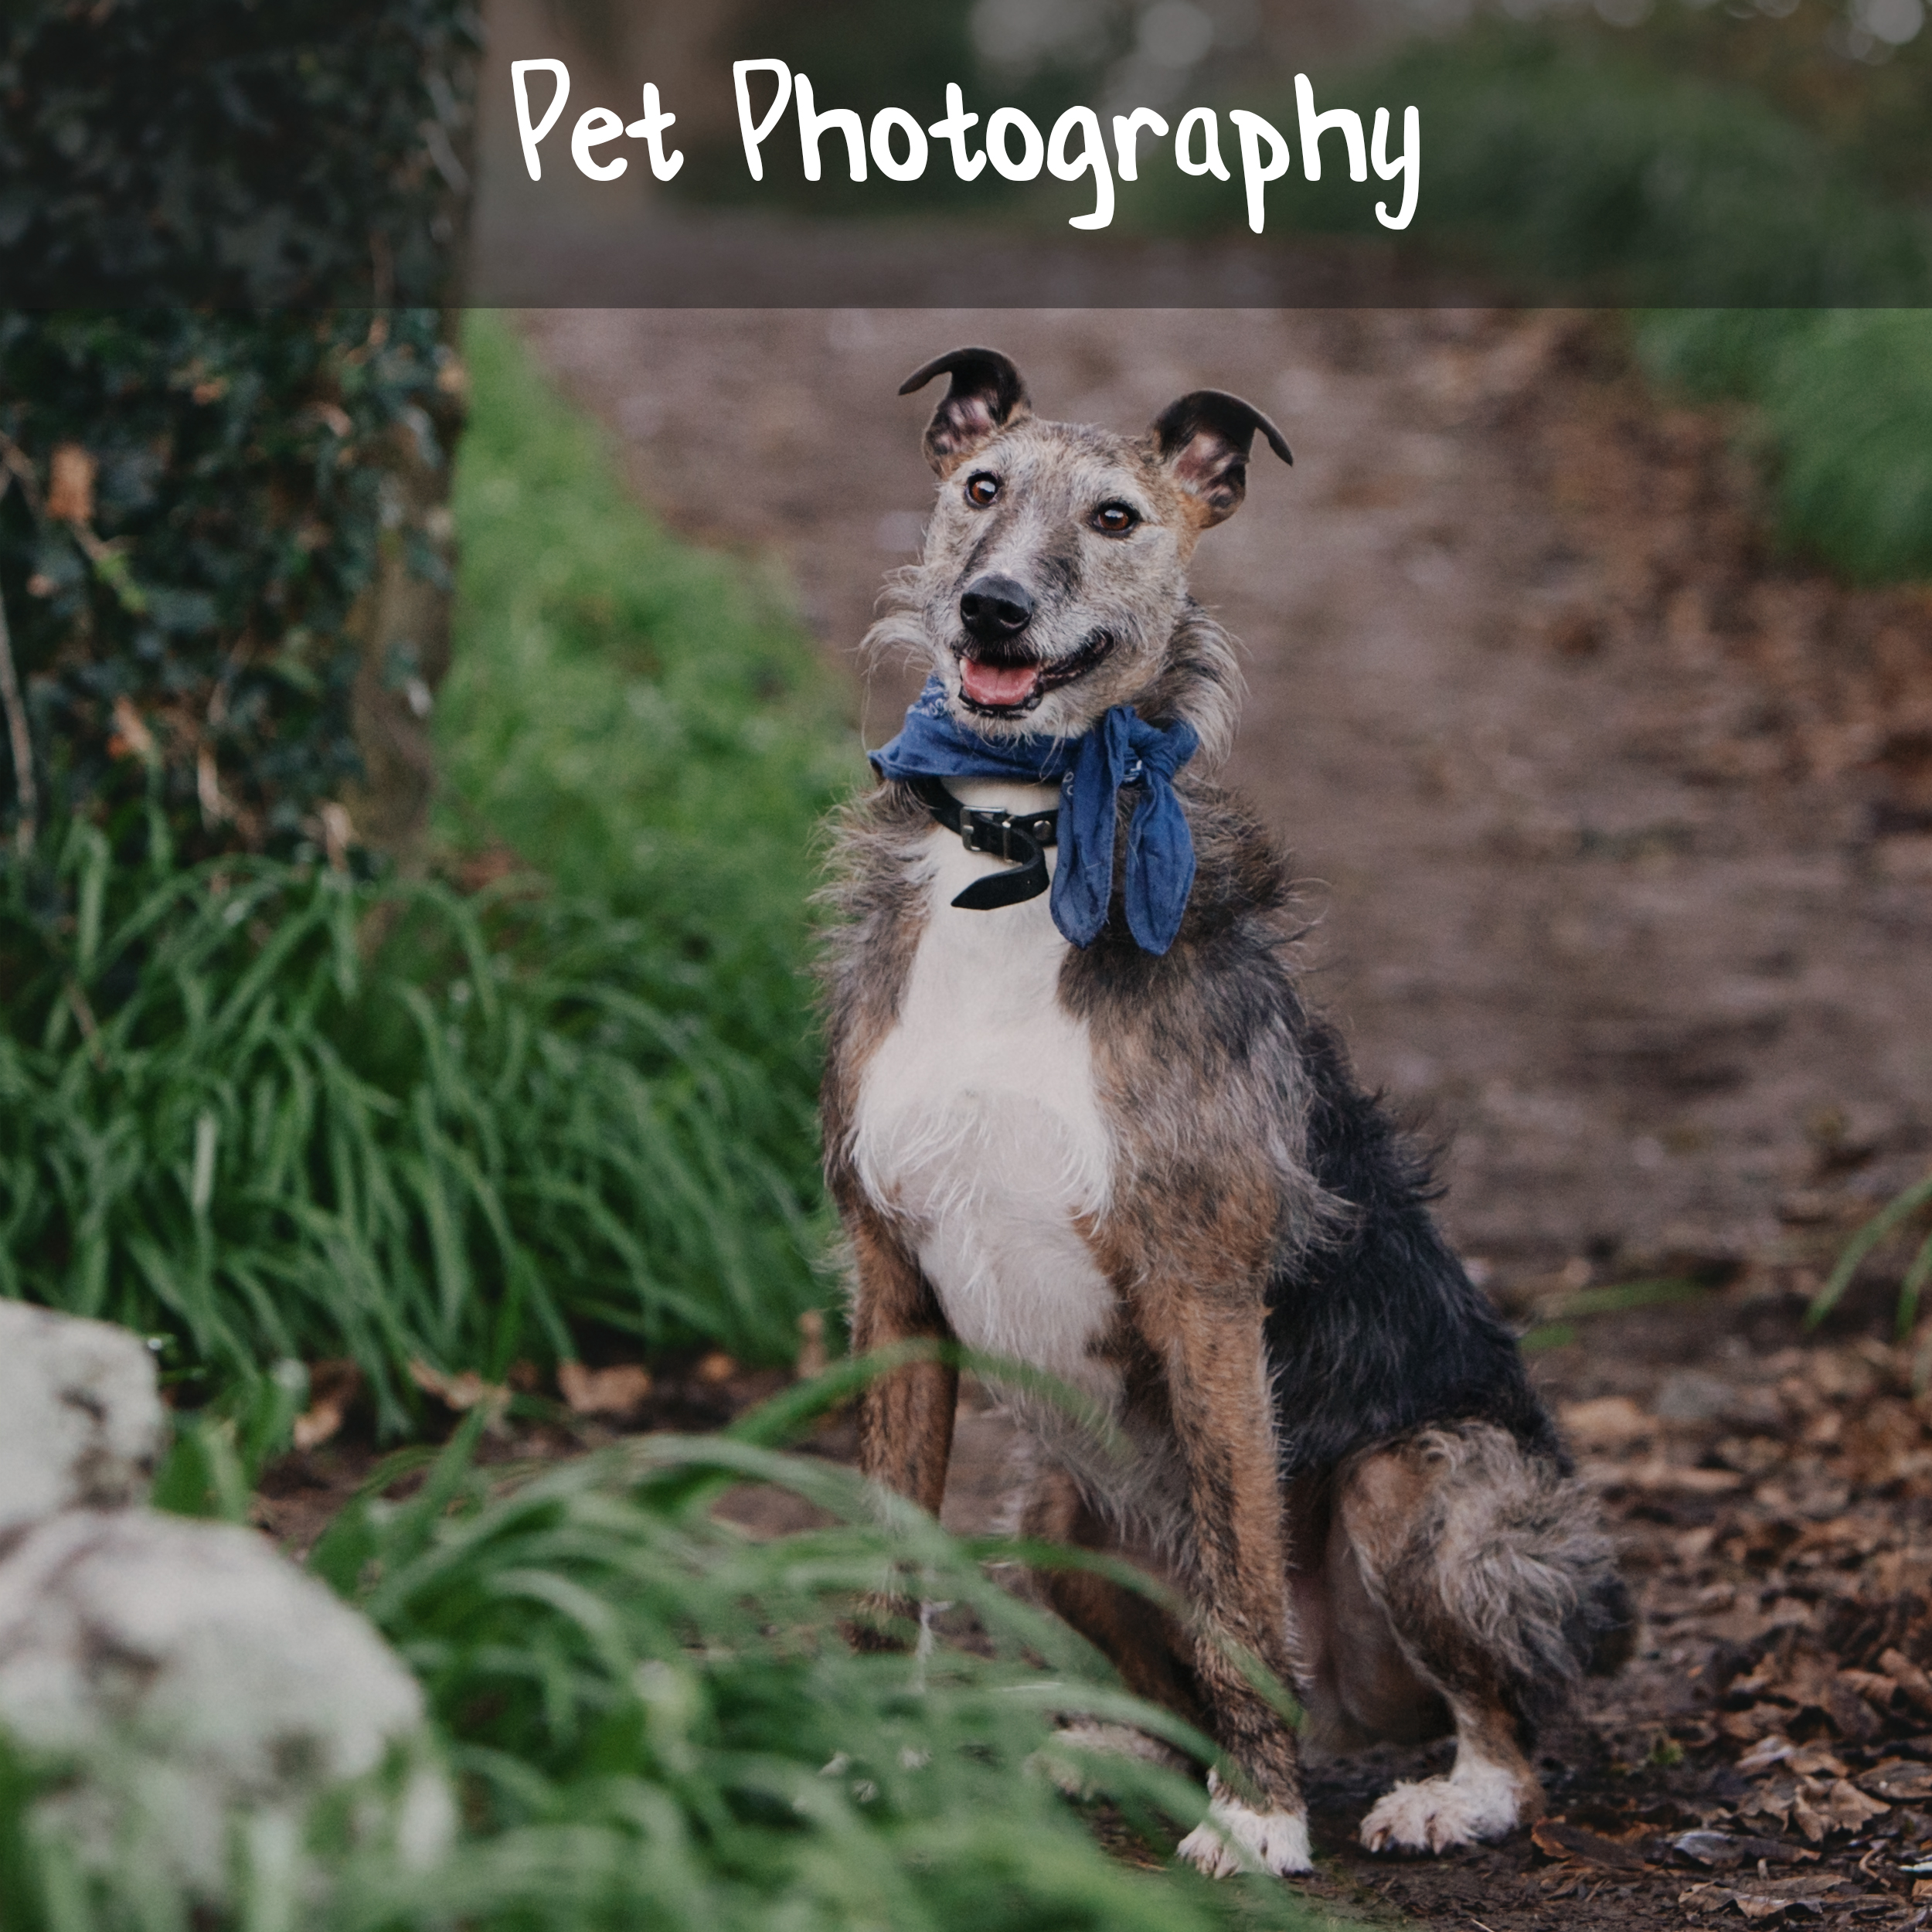 A greyhound wearing a blue bandana sitting on a path near the cliffs in Co. Waterford, Ireland